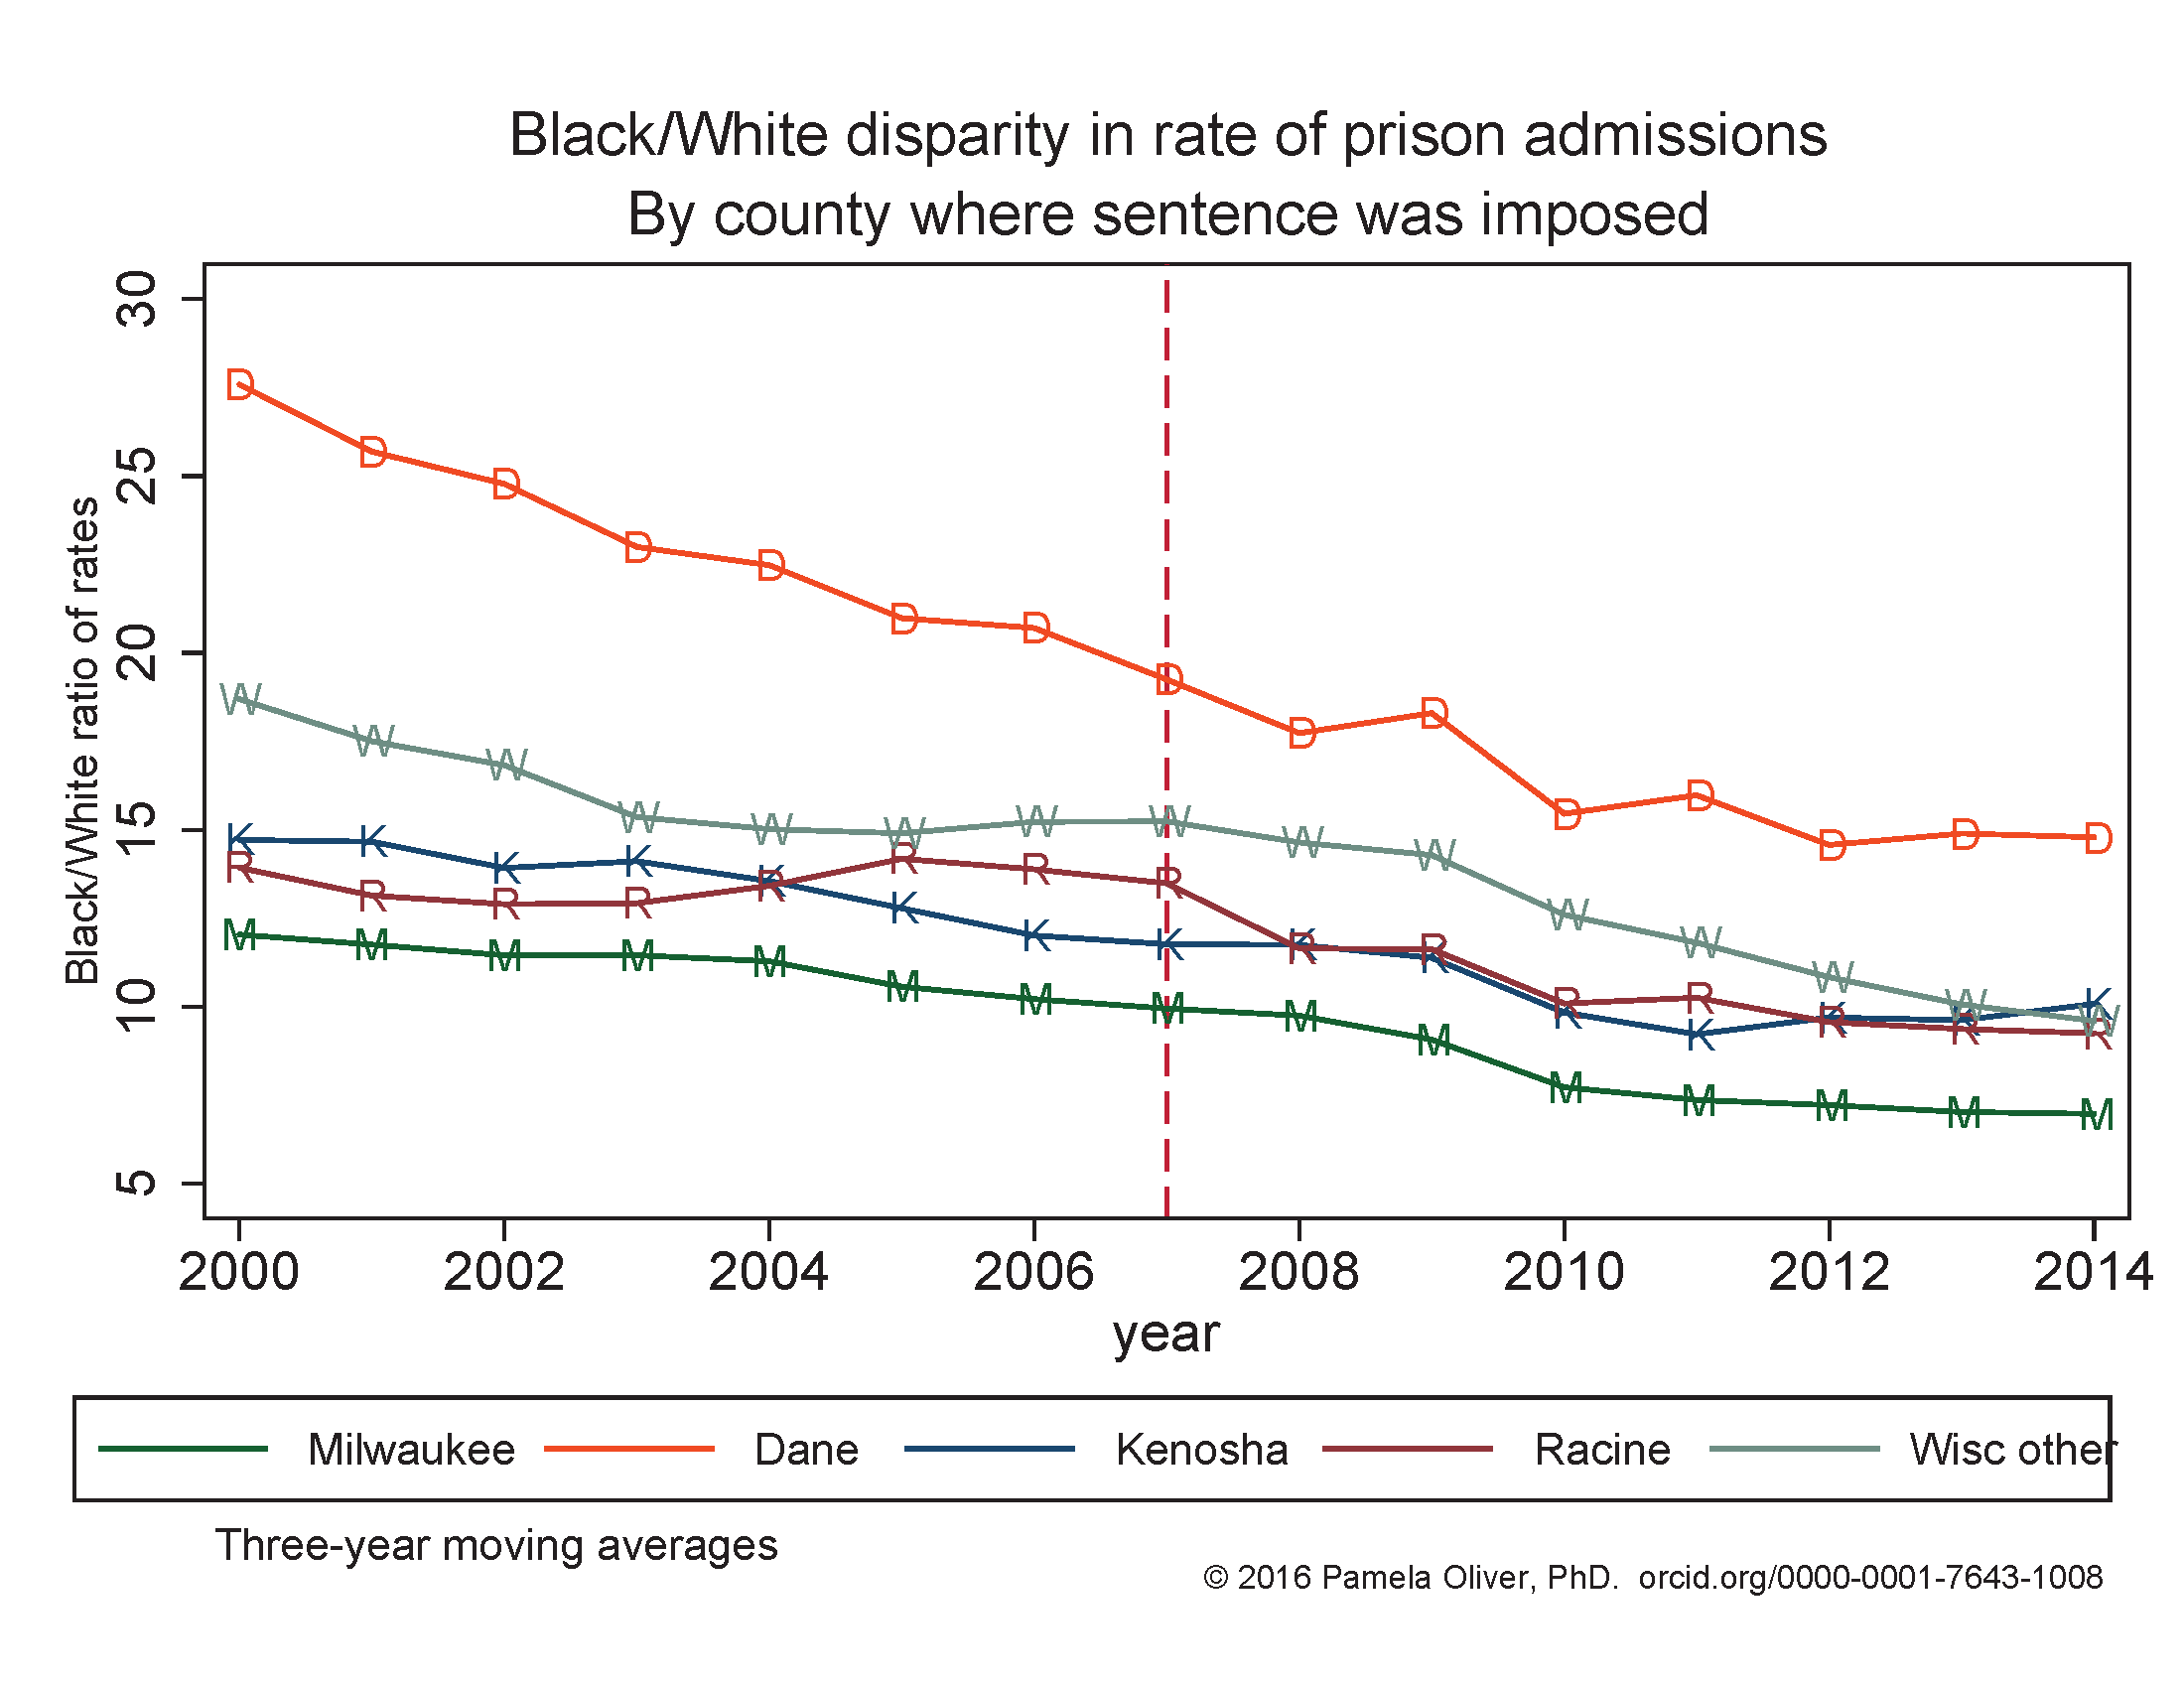 Black/White disparity in prison admission rates by Wisconsin County